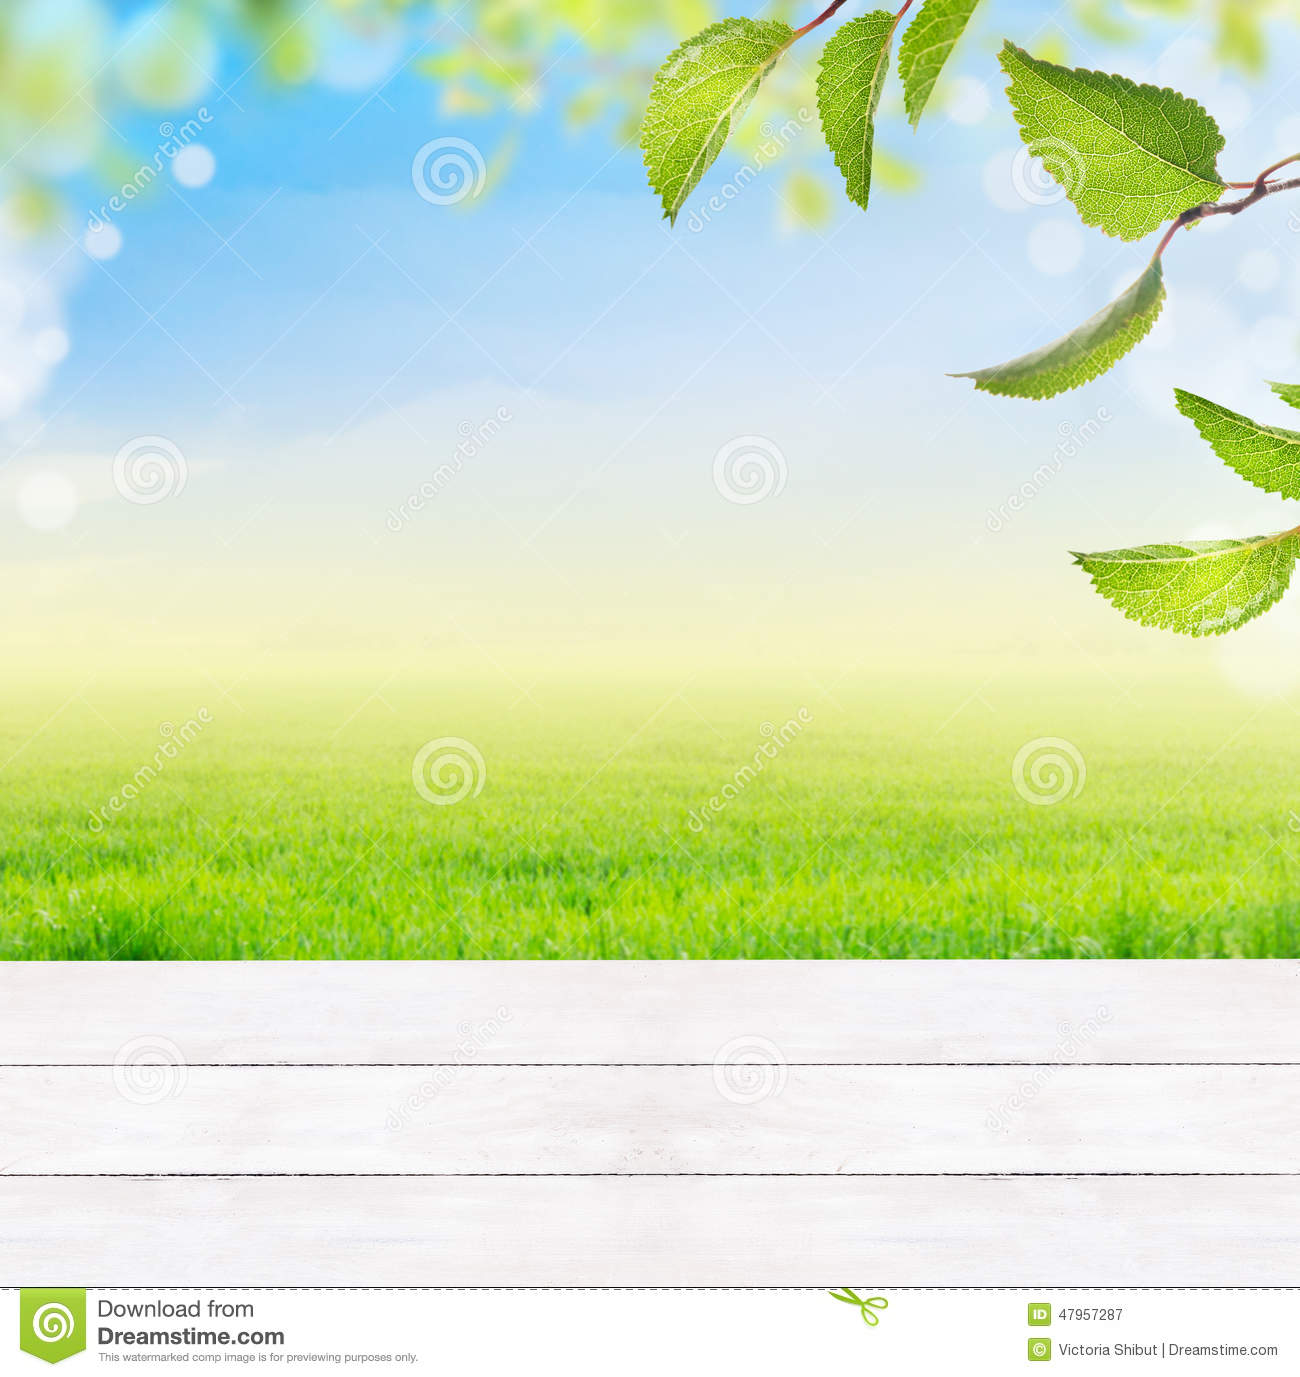 background with white wooden table,grass,green leaves,blue sky,grass and bokeh